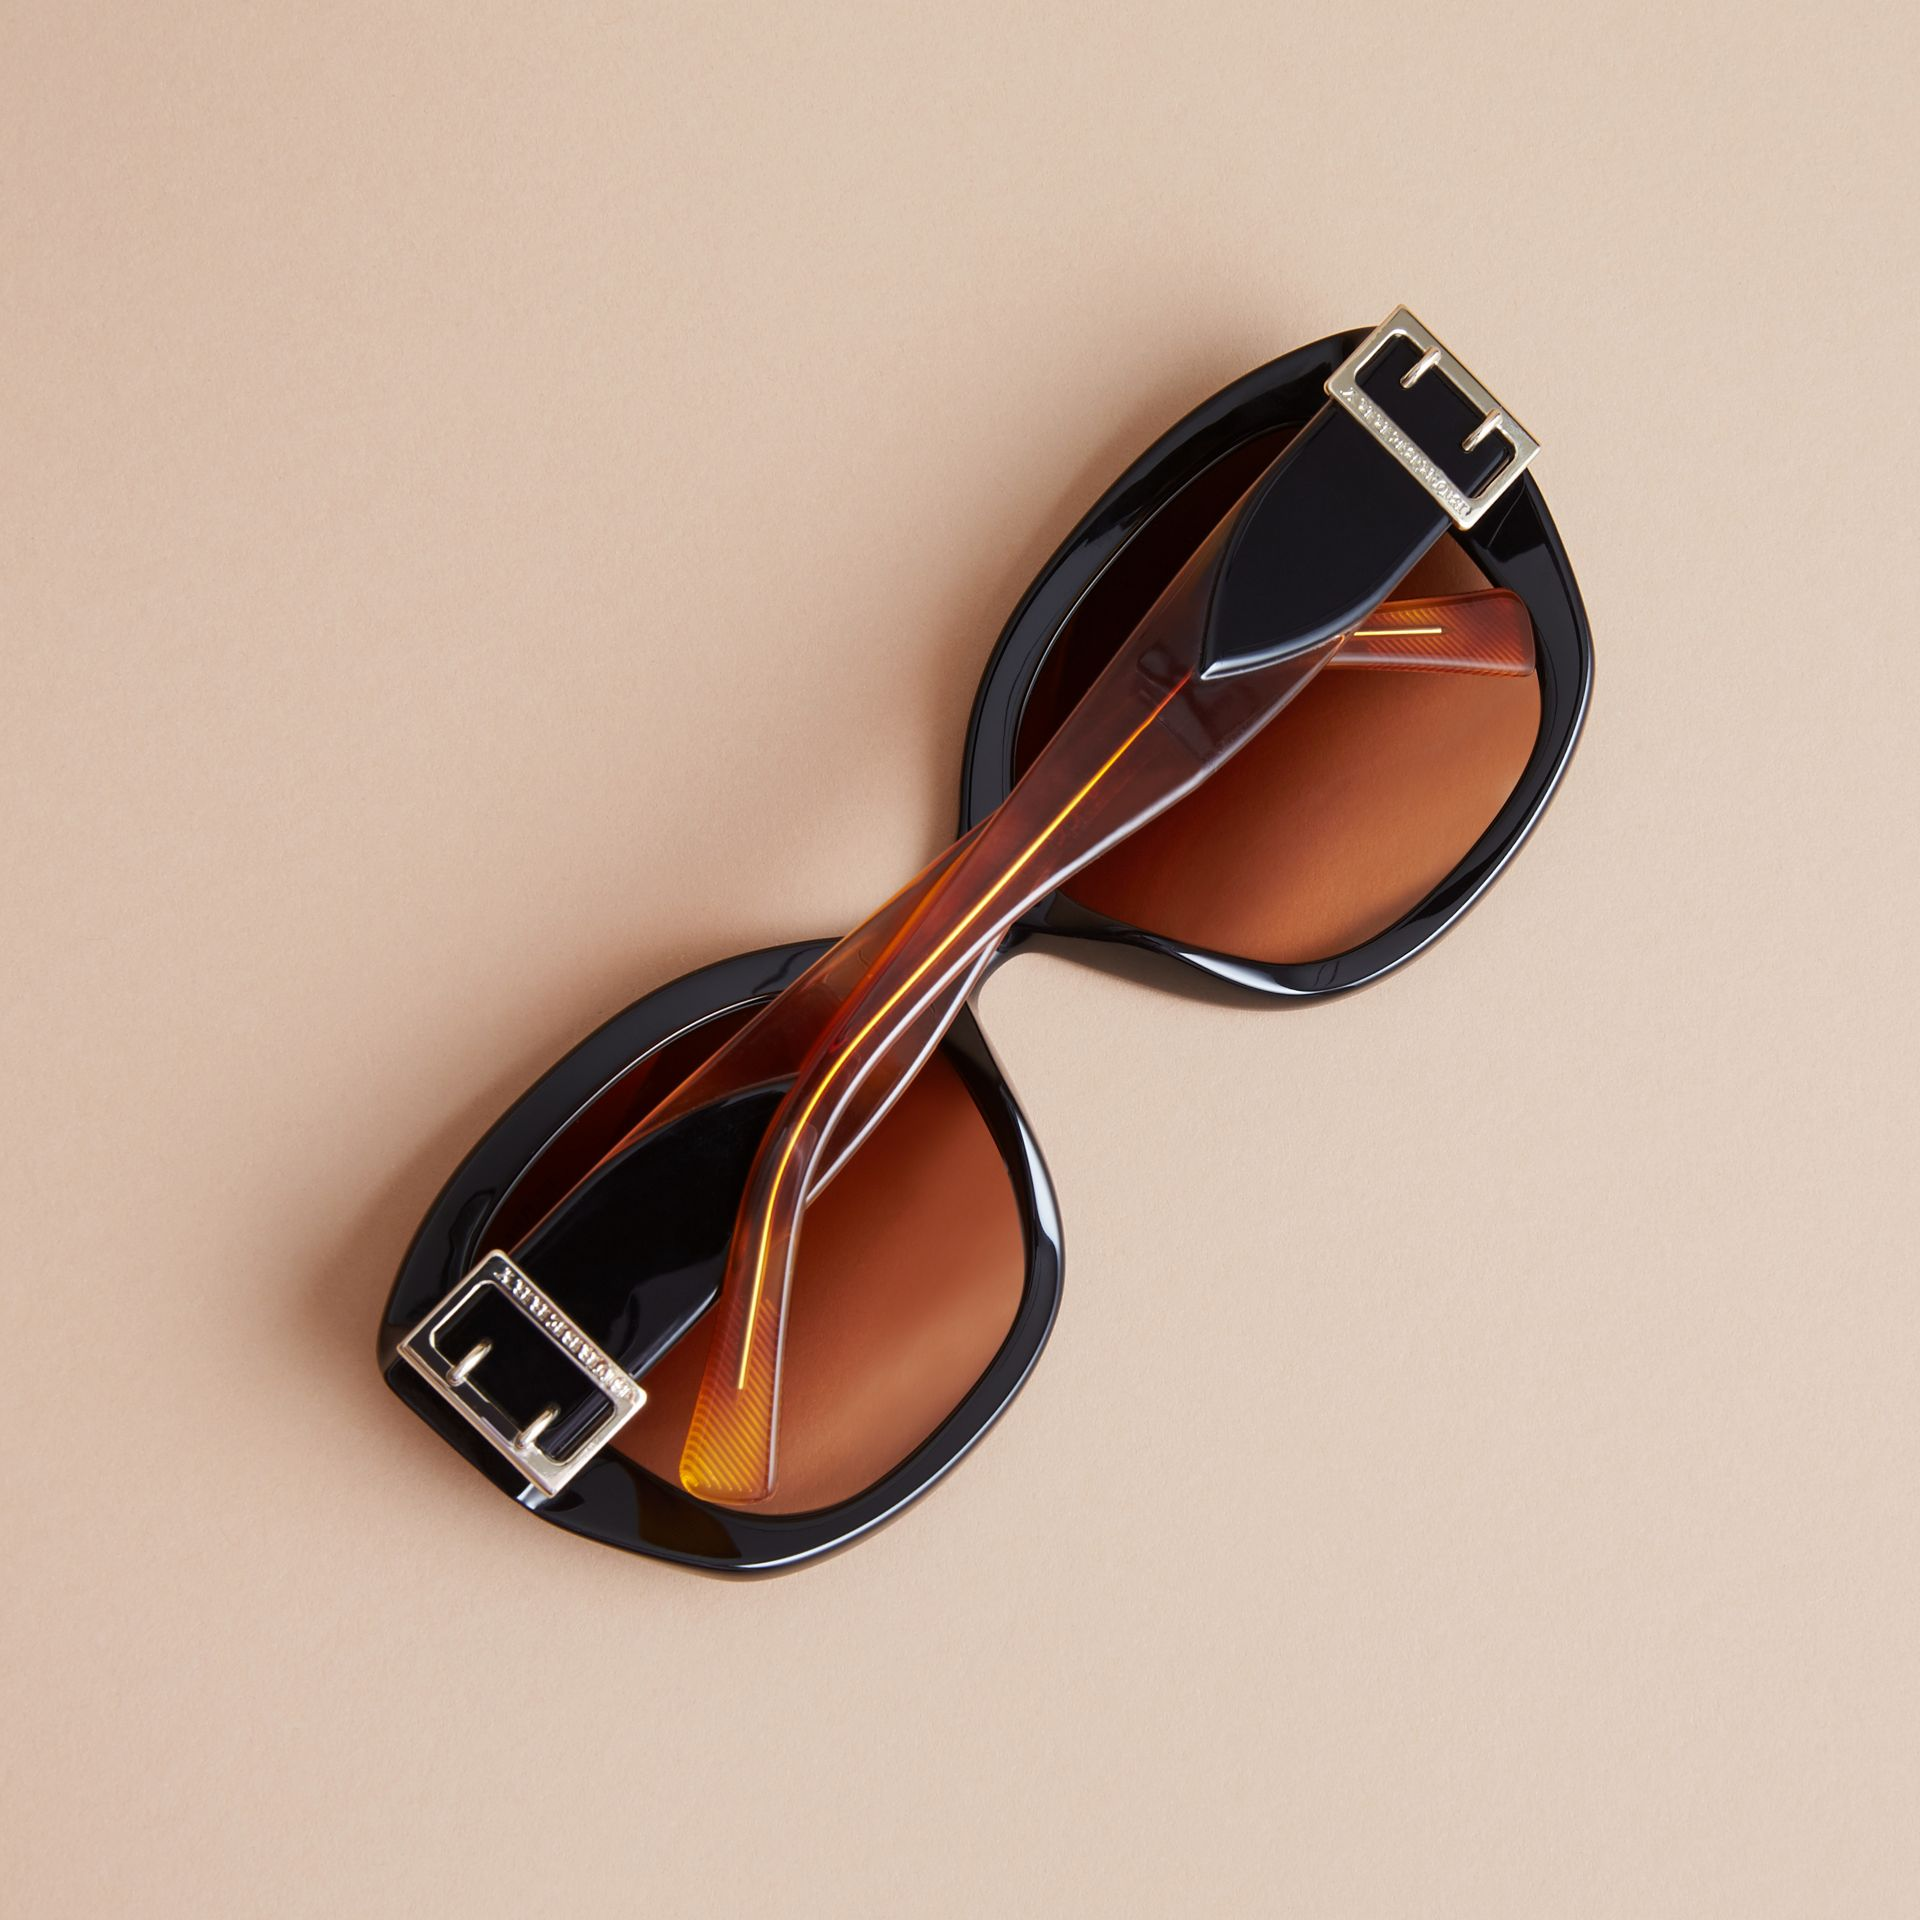 Buckle Detail Oversize Square Frame Sunglasses in Black - Women | Burberry Australia - gallery image 3